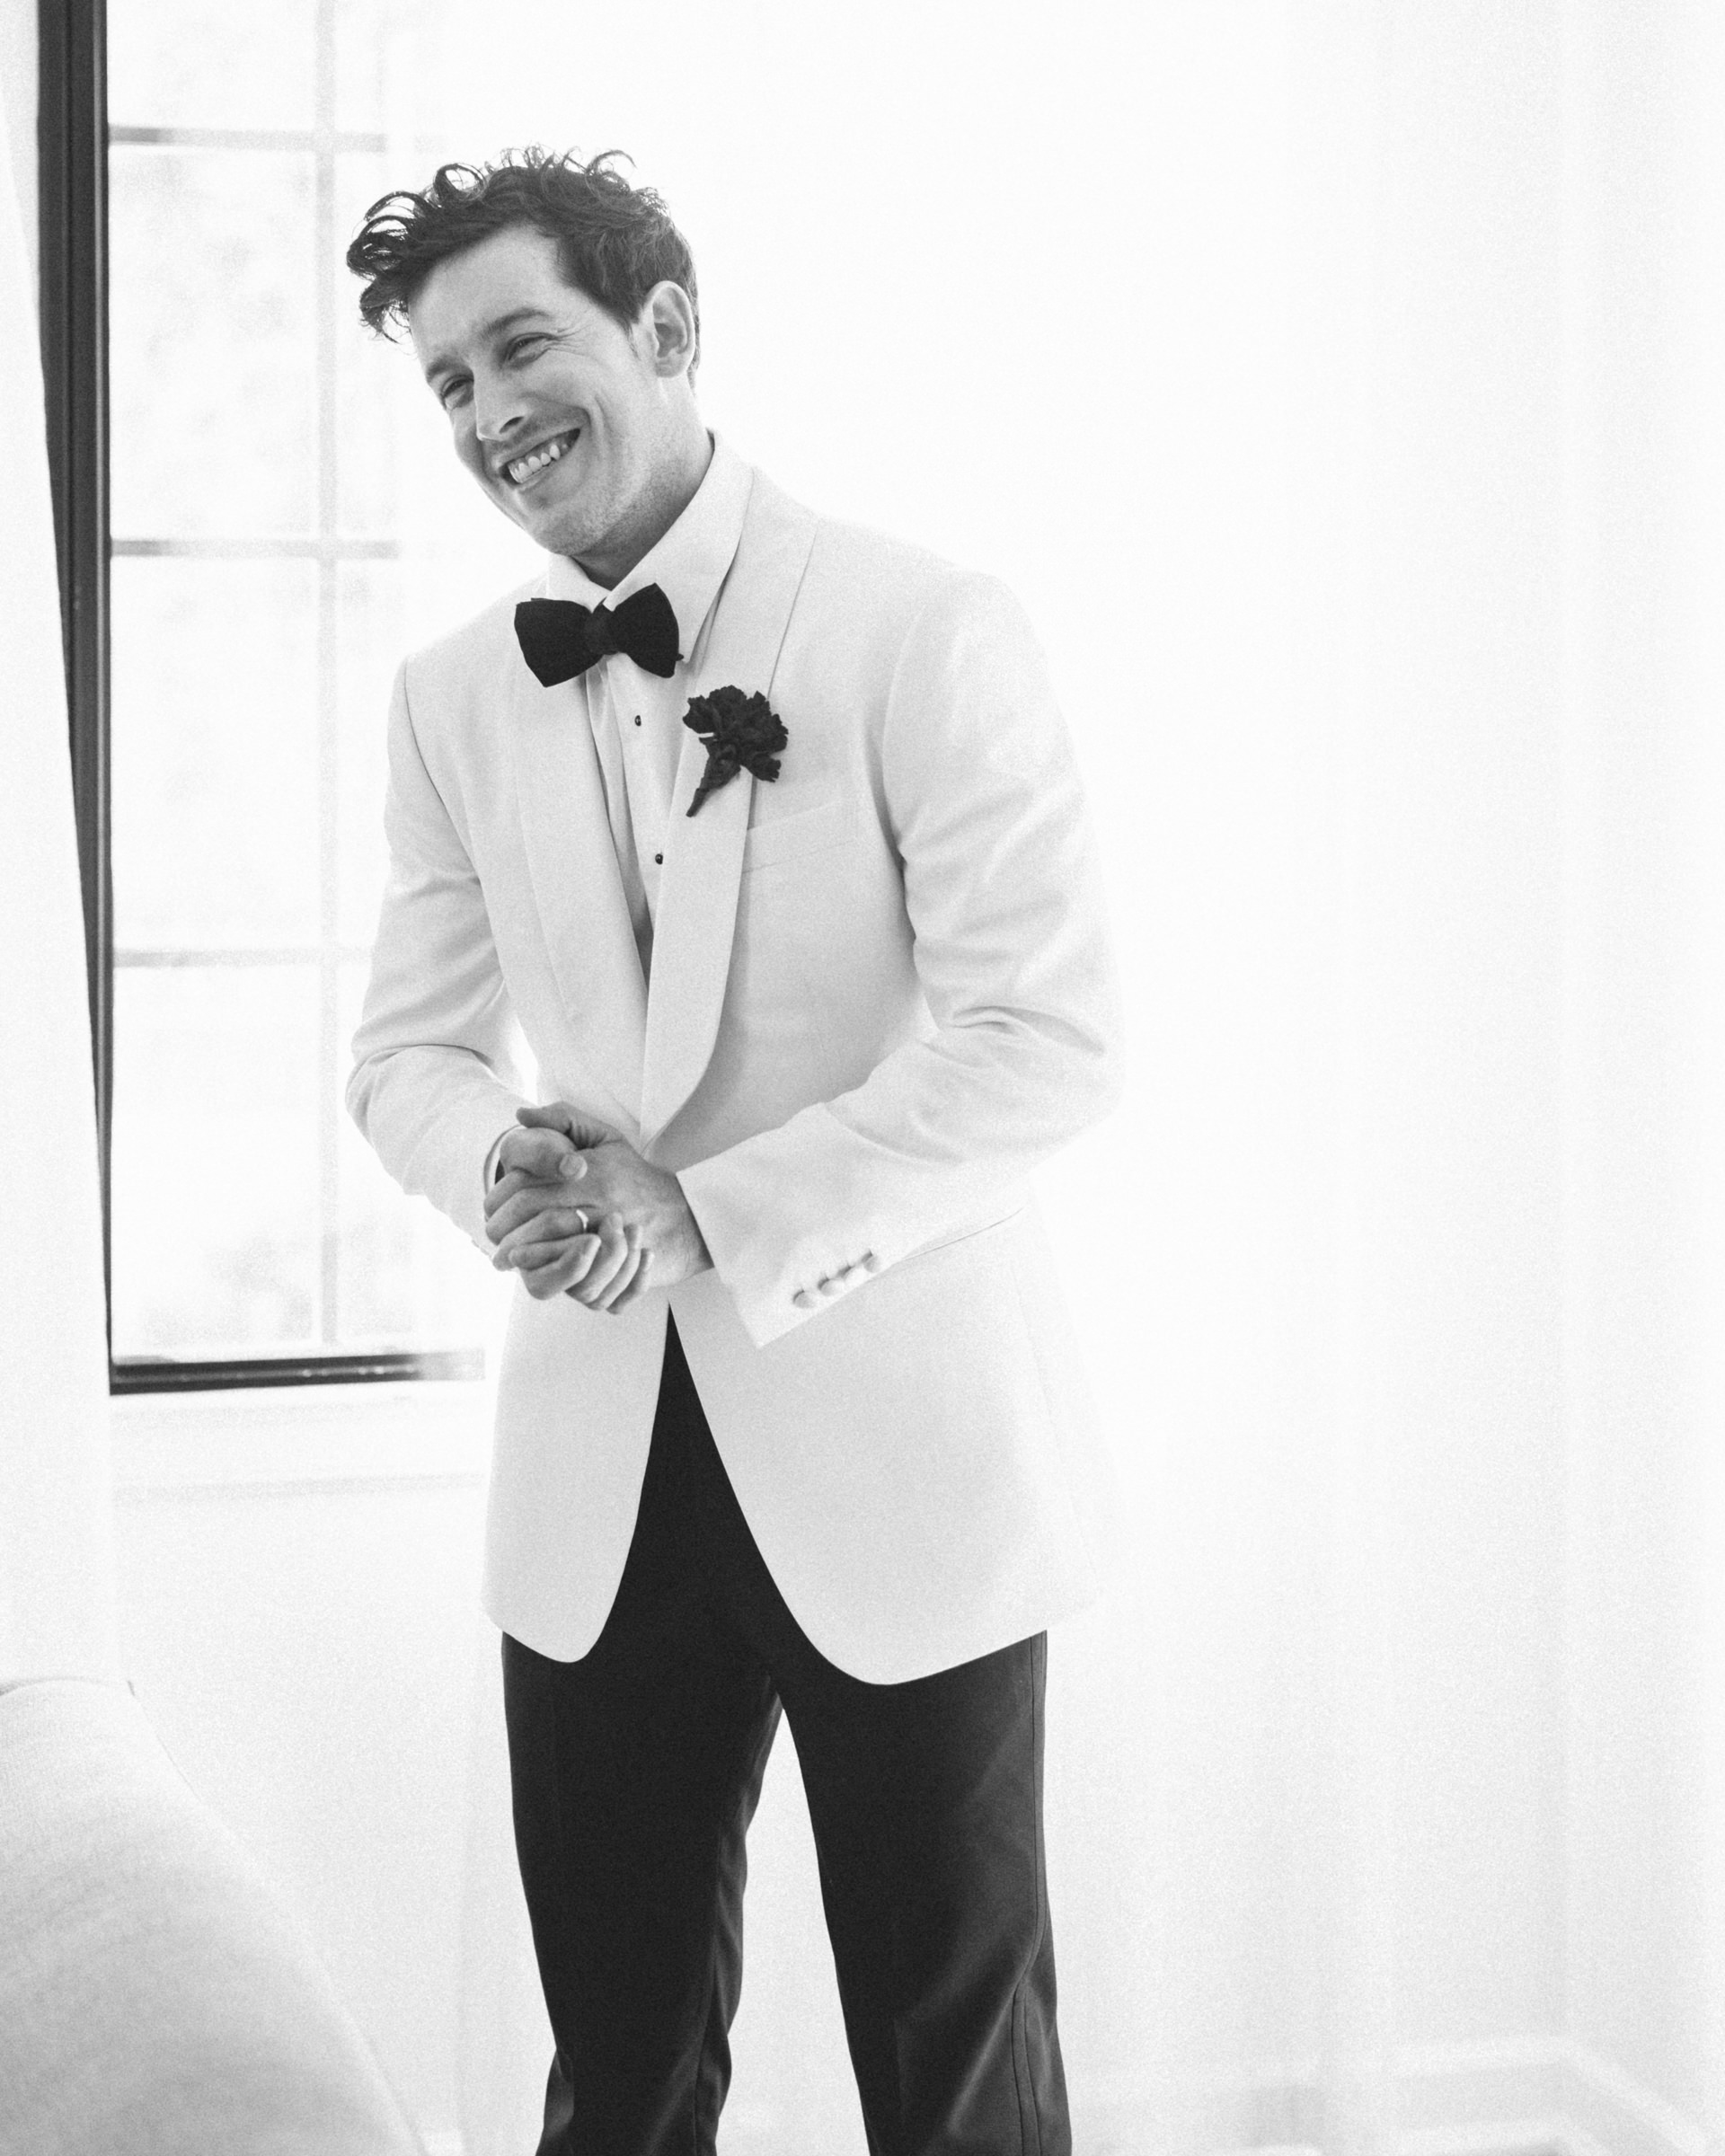 Smiling groom - photo by Amy and Stuart Photography